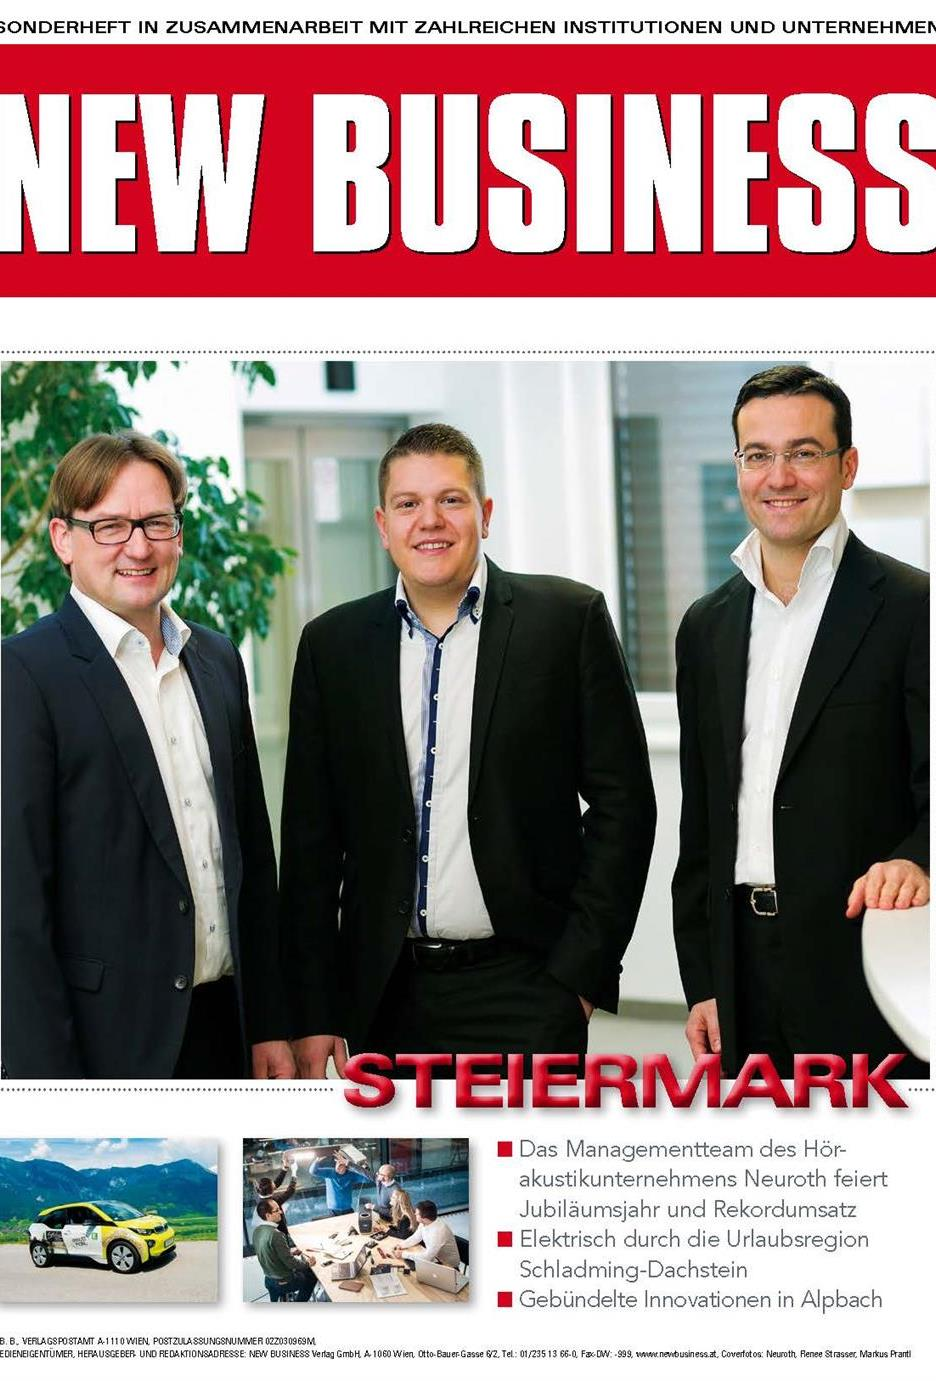 Cover: NEW BUSINESS Bundeslandspecial - STEIERMARK 2017